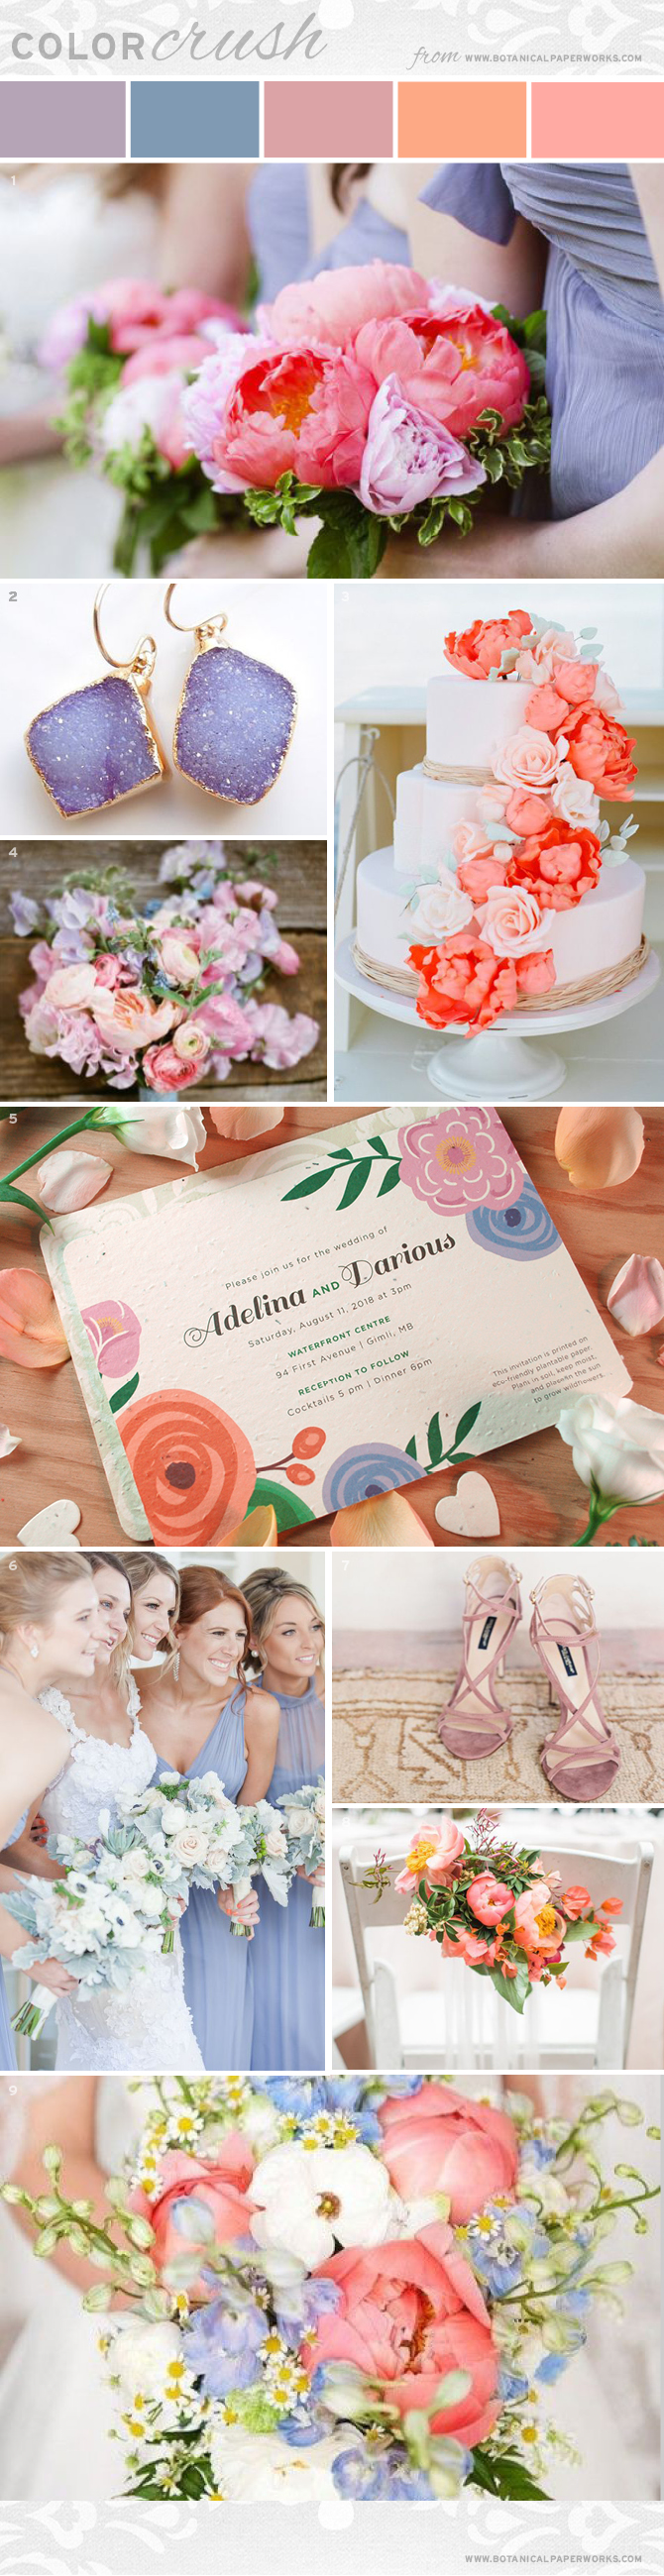 Flirty and feminine, the coral, blush and periwinkle color palette features in this Color Crush Inspiration Board are perfect for summer weddings. If you're an upcoming bride, take a look and get inspired!